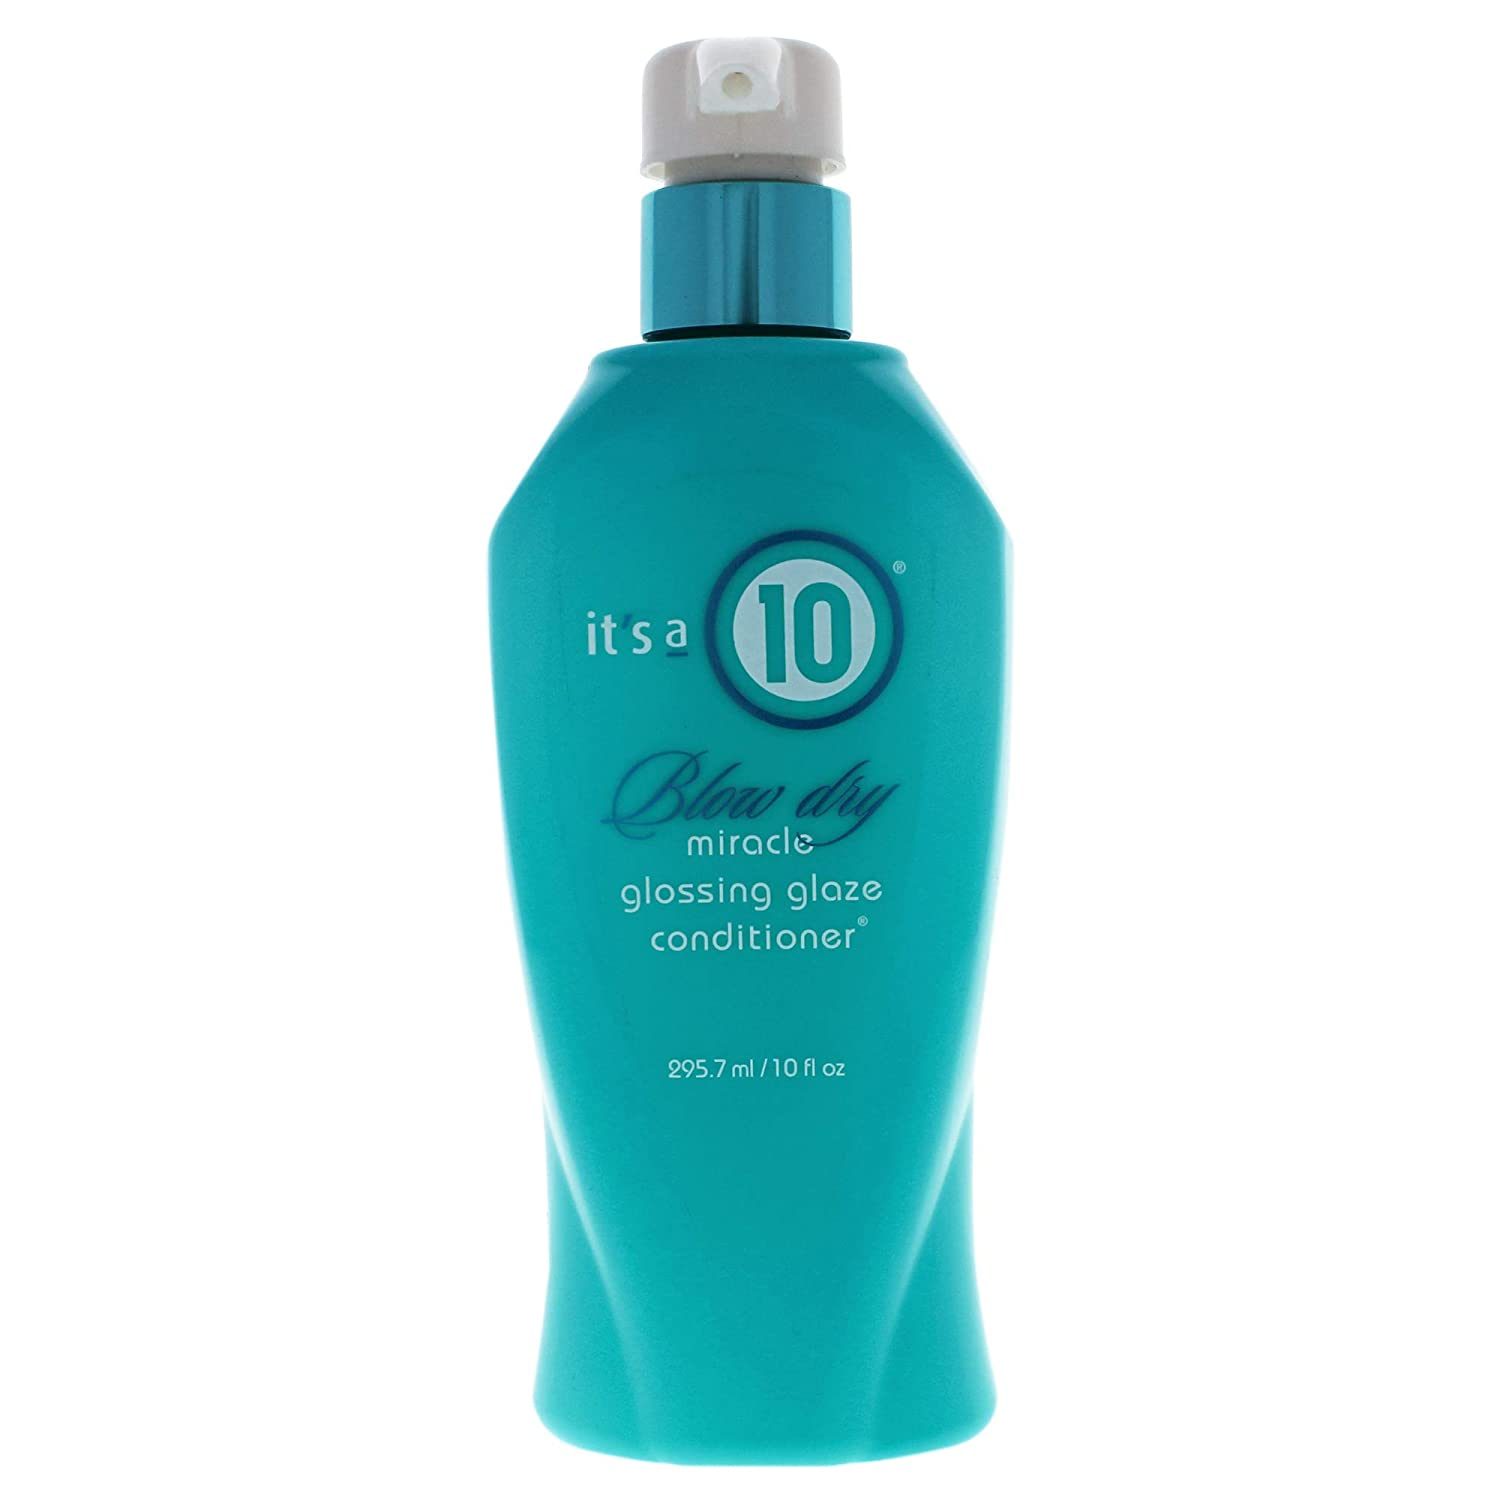 it's a 10 Blow Dry Miracle Glossing Glaze Conditioner